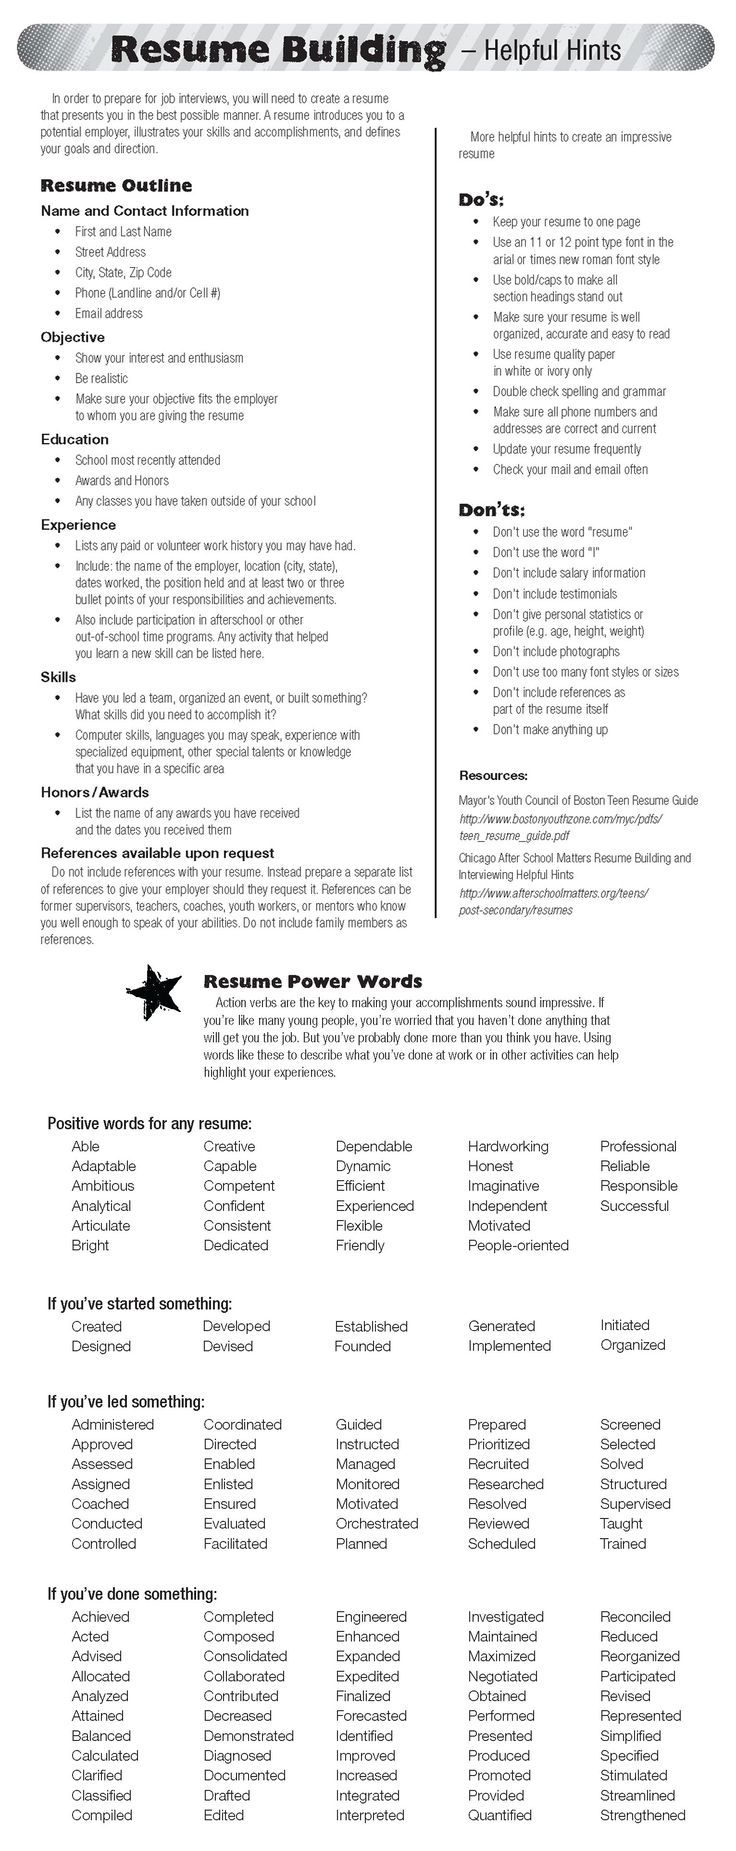 Check Out TodayS Resume Building Tips  Employment Jobs